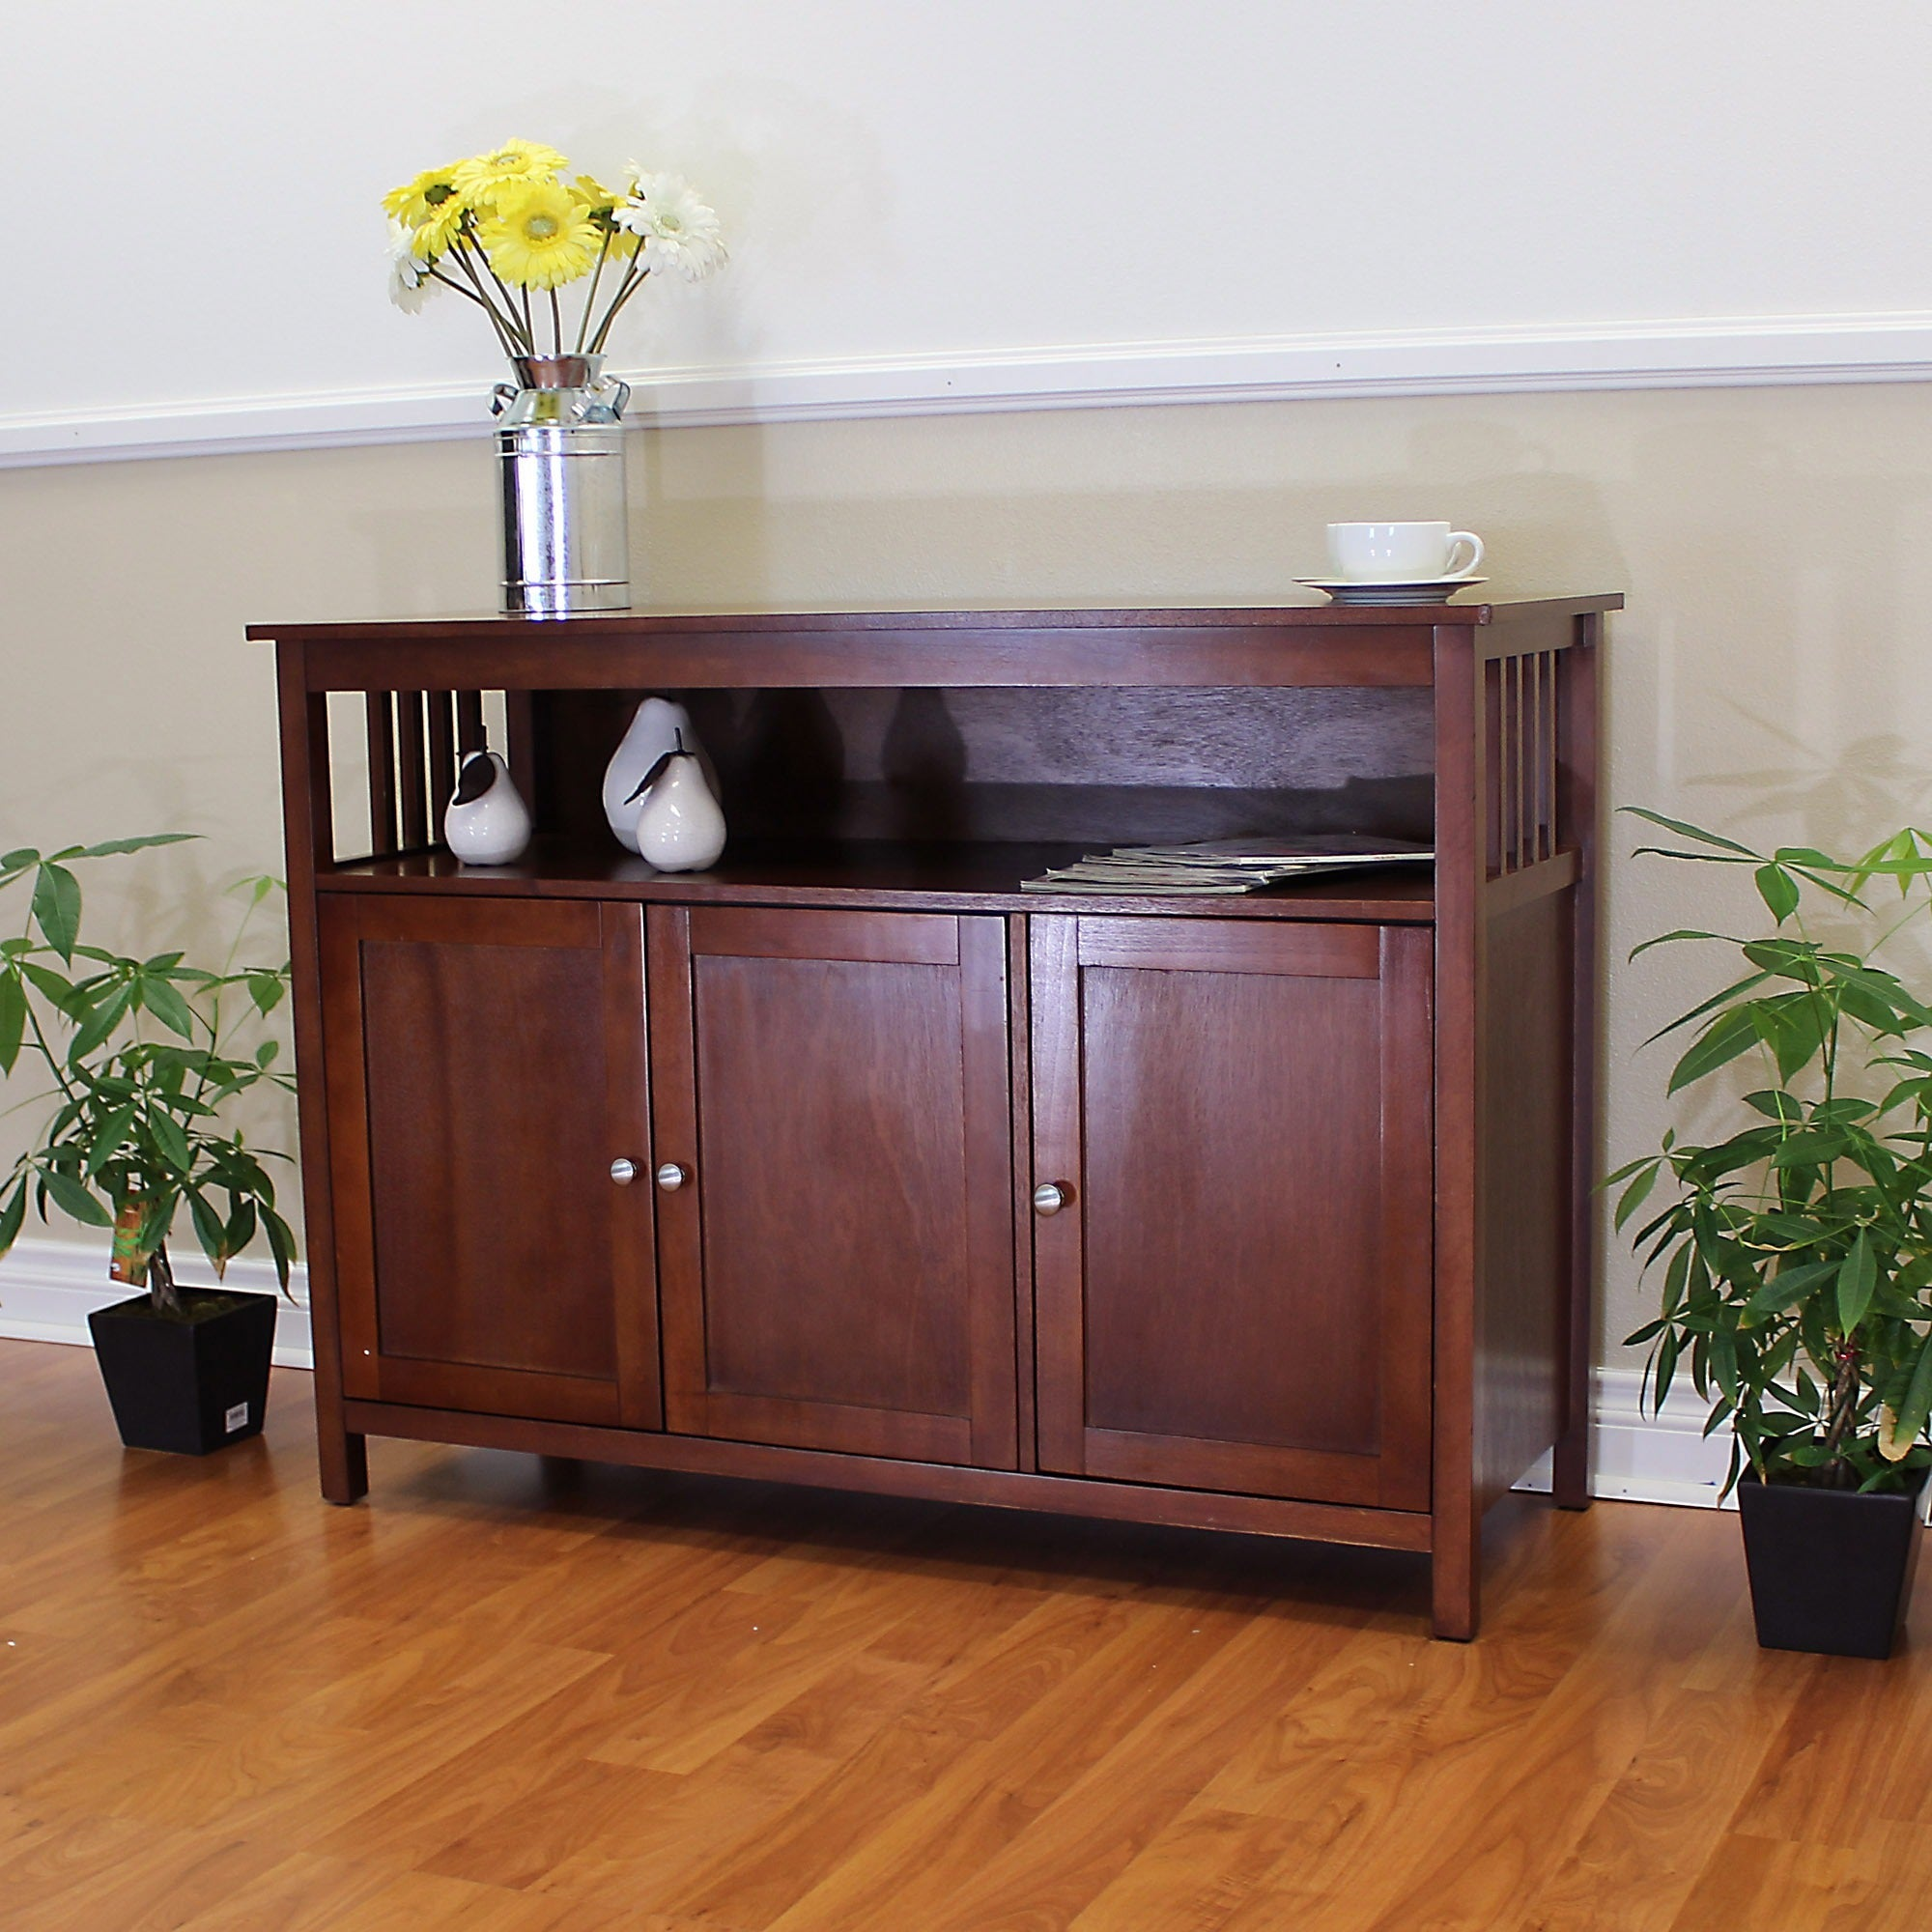 kandell and tables john early listings rare furniture swedish sideboard side table nesting set teak low